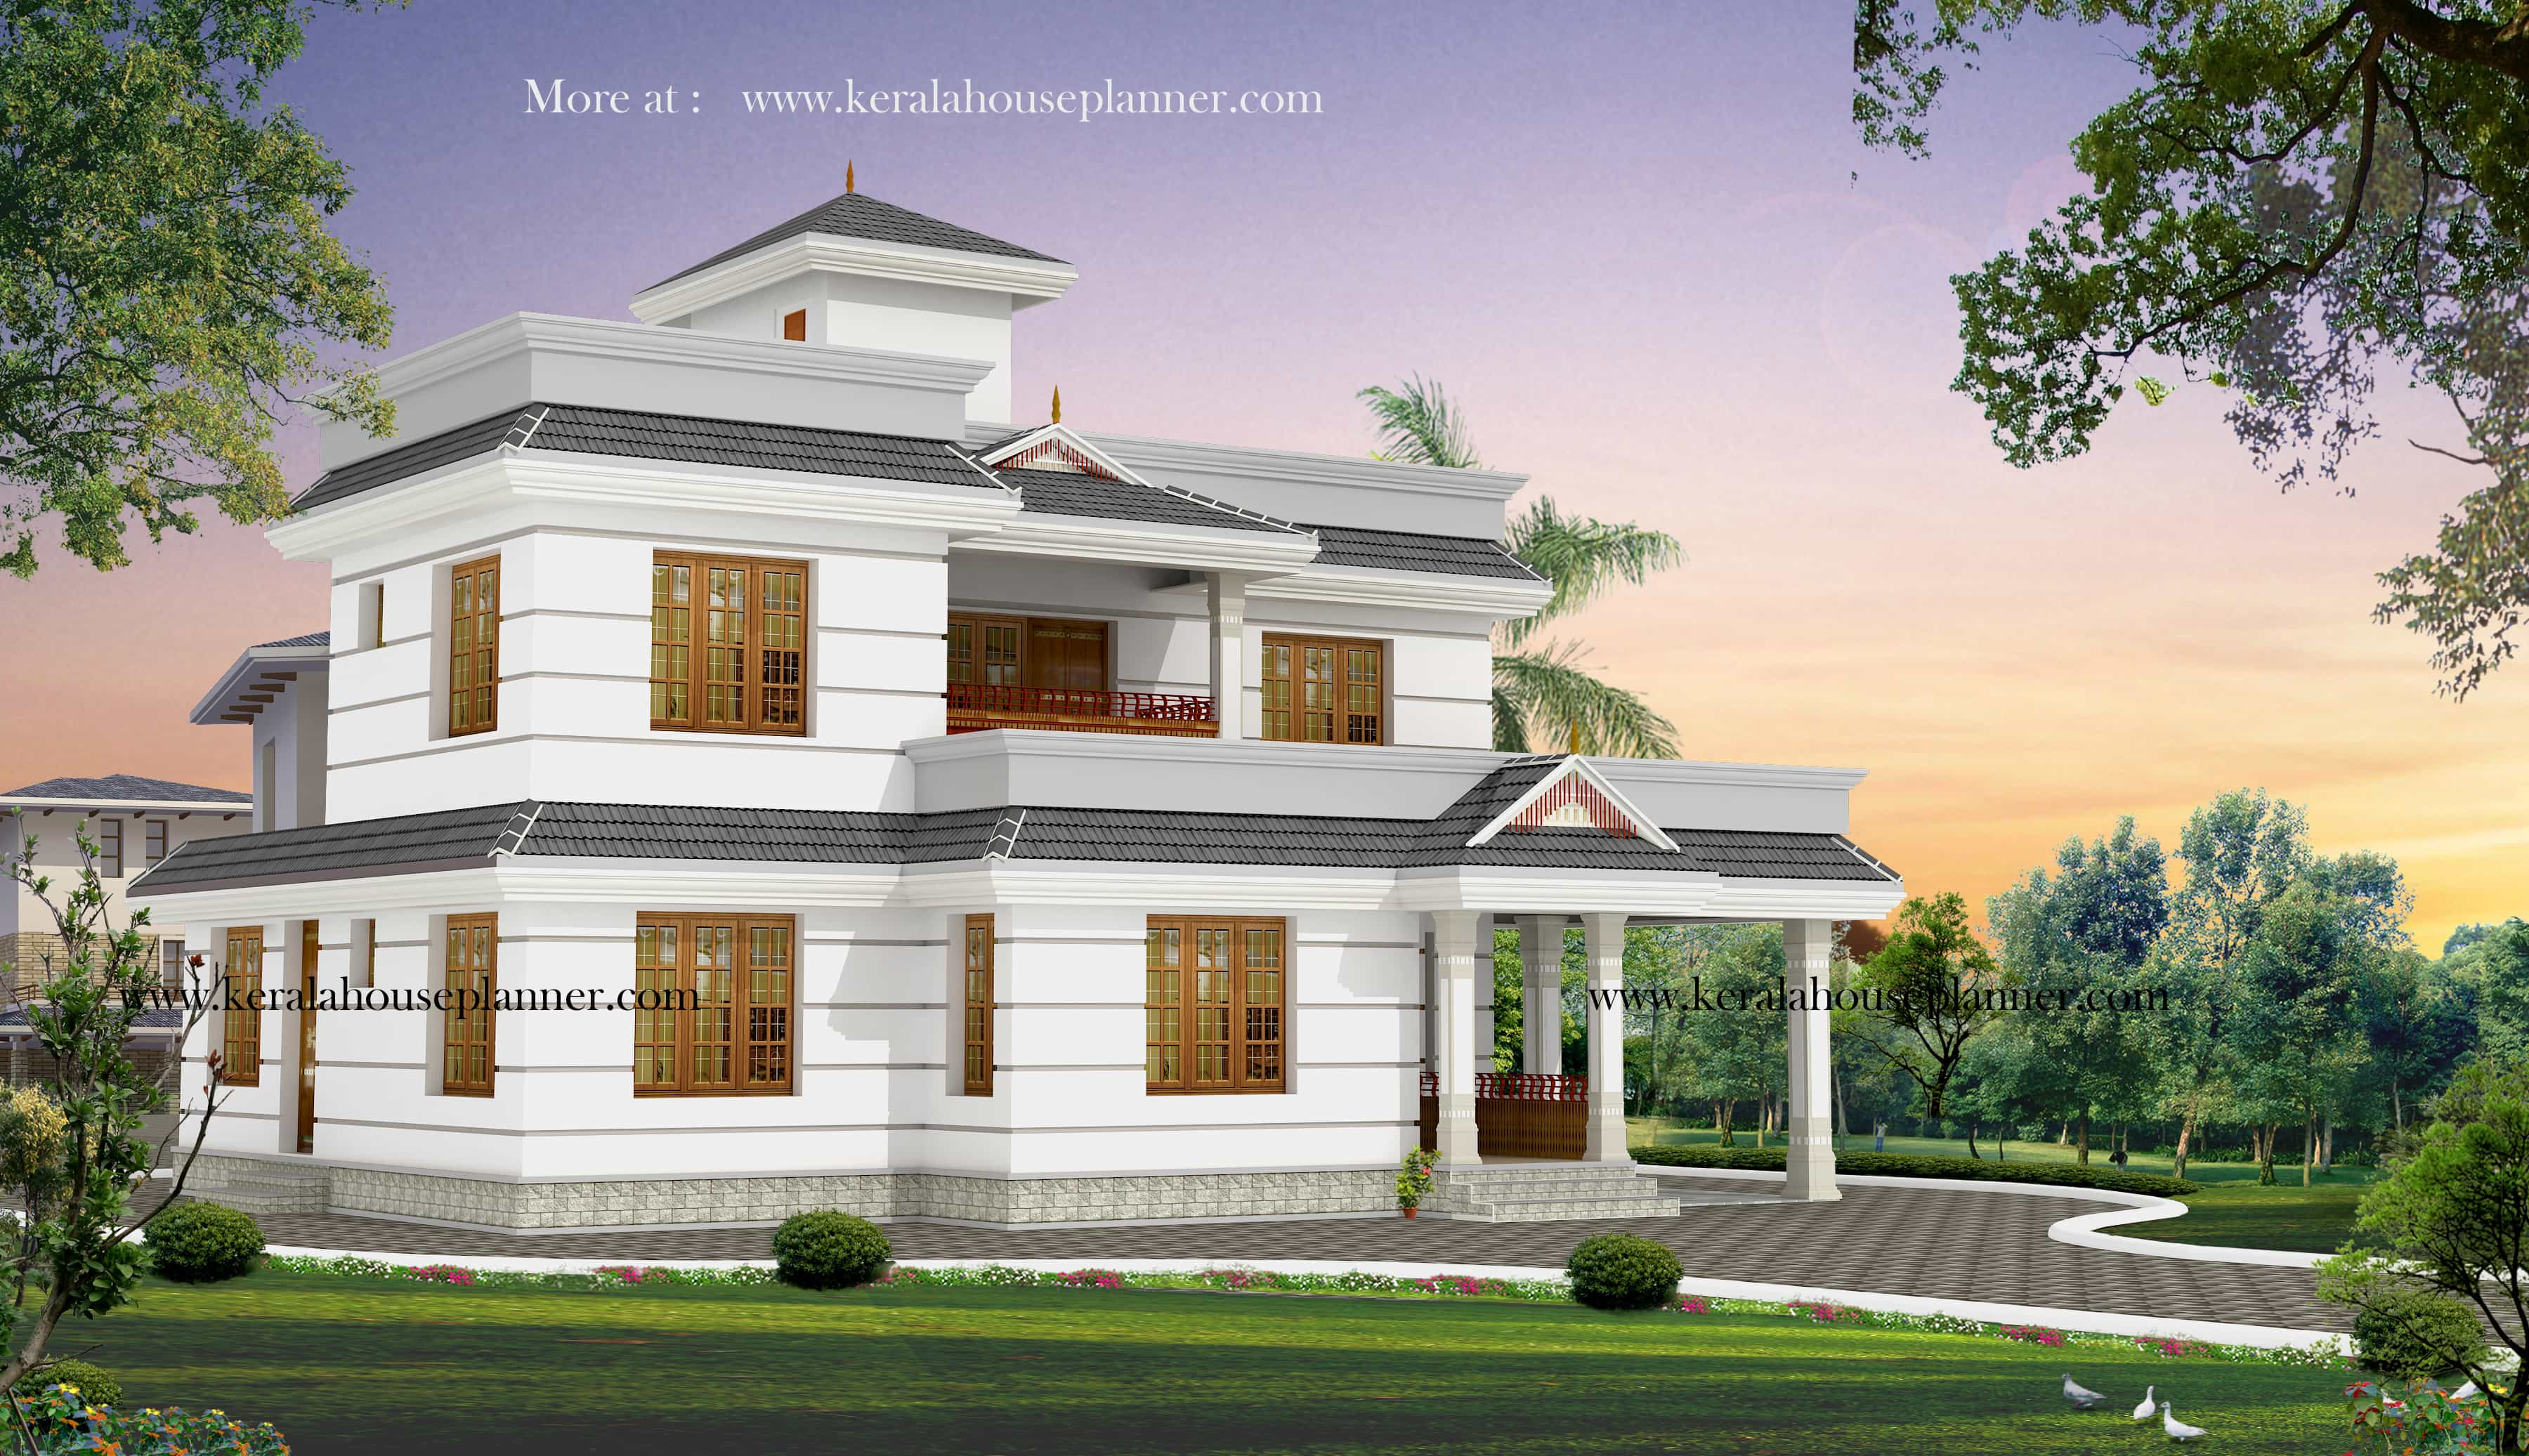 Two storey kerala house designs 2 18 keralahouseplanner Latest home design